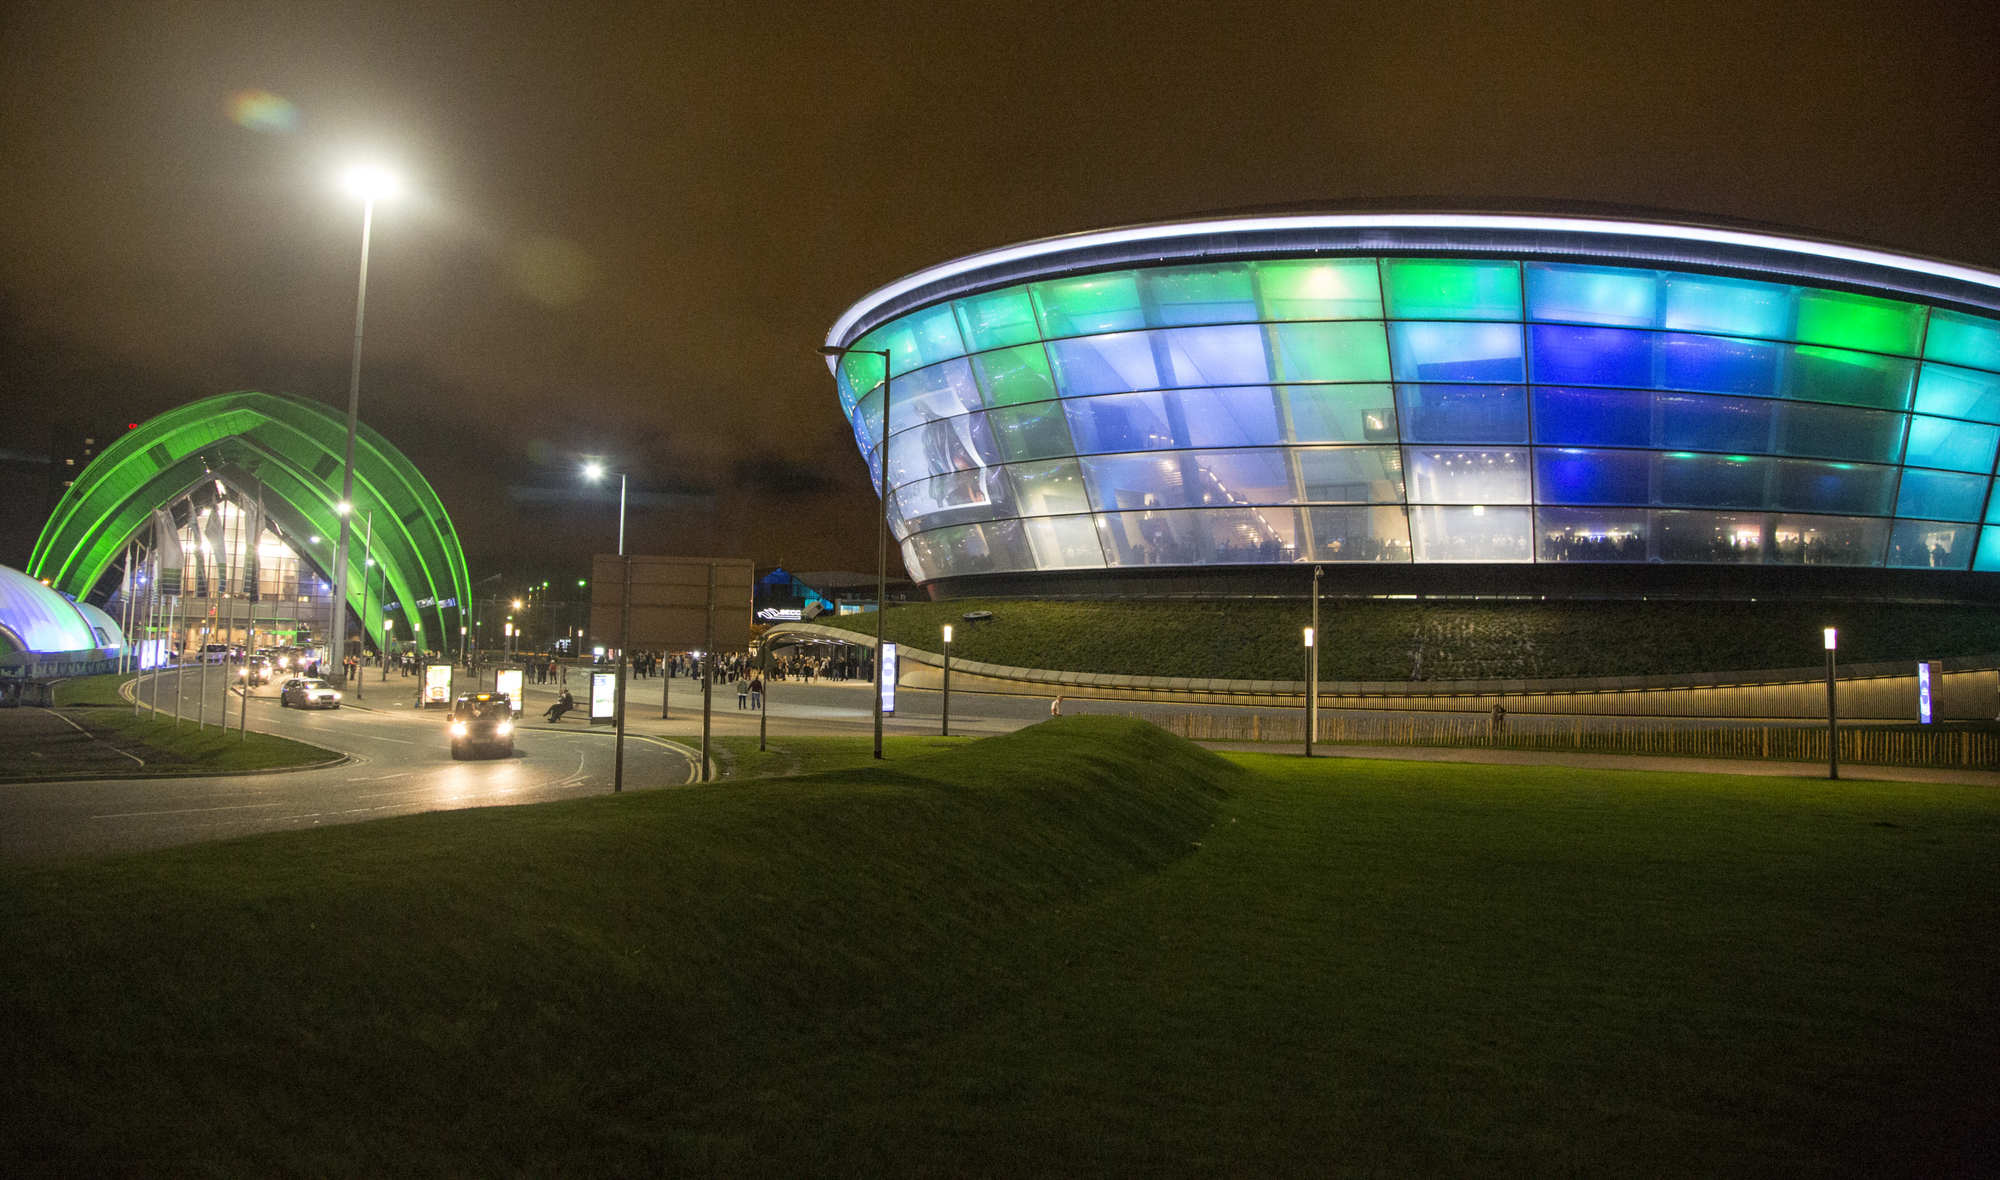 http://ad009cdnb.archdaily.net/wp-content/uploads/2014/04/53504b50c07a804600000005_foster-partners-sse-hydro-arena-features-translucent-skin-innovative-seating-system_3r1a6813.jpg